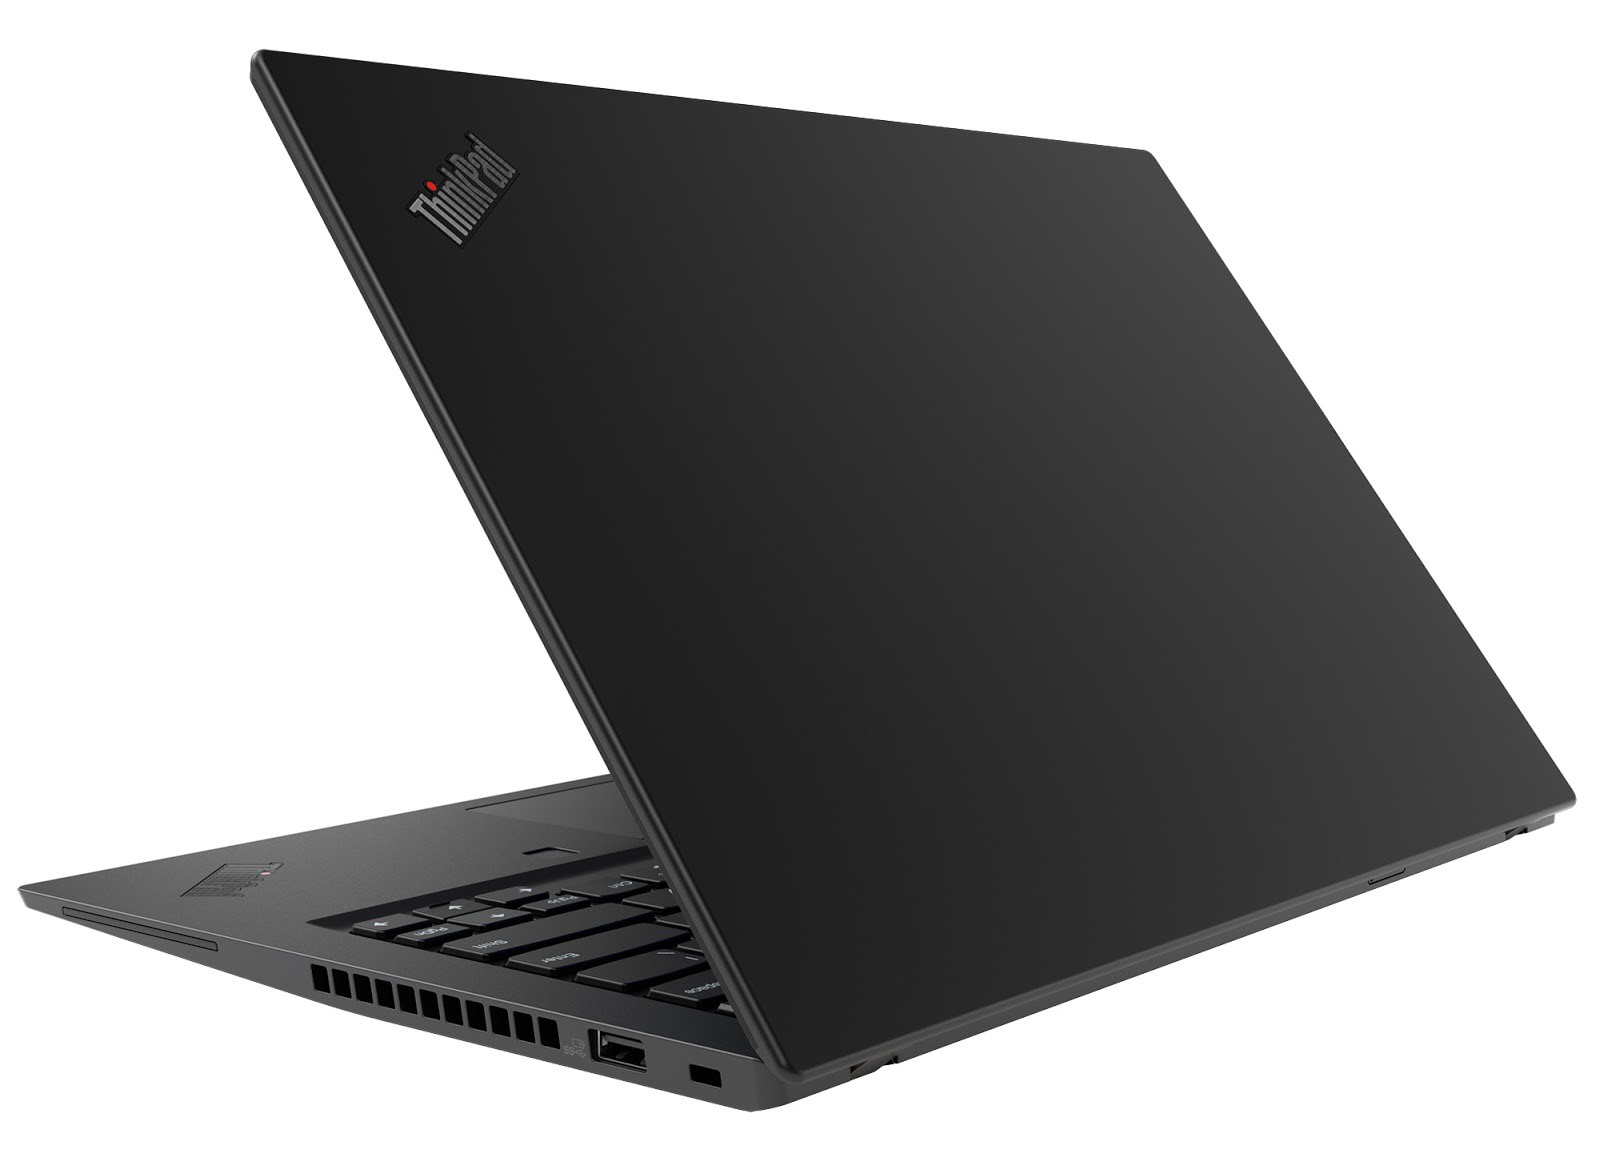 Фото 2. Ноутбук Lenovo ThinkPad T14 Gen 1 Black (20S00011RT)